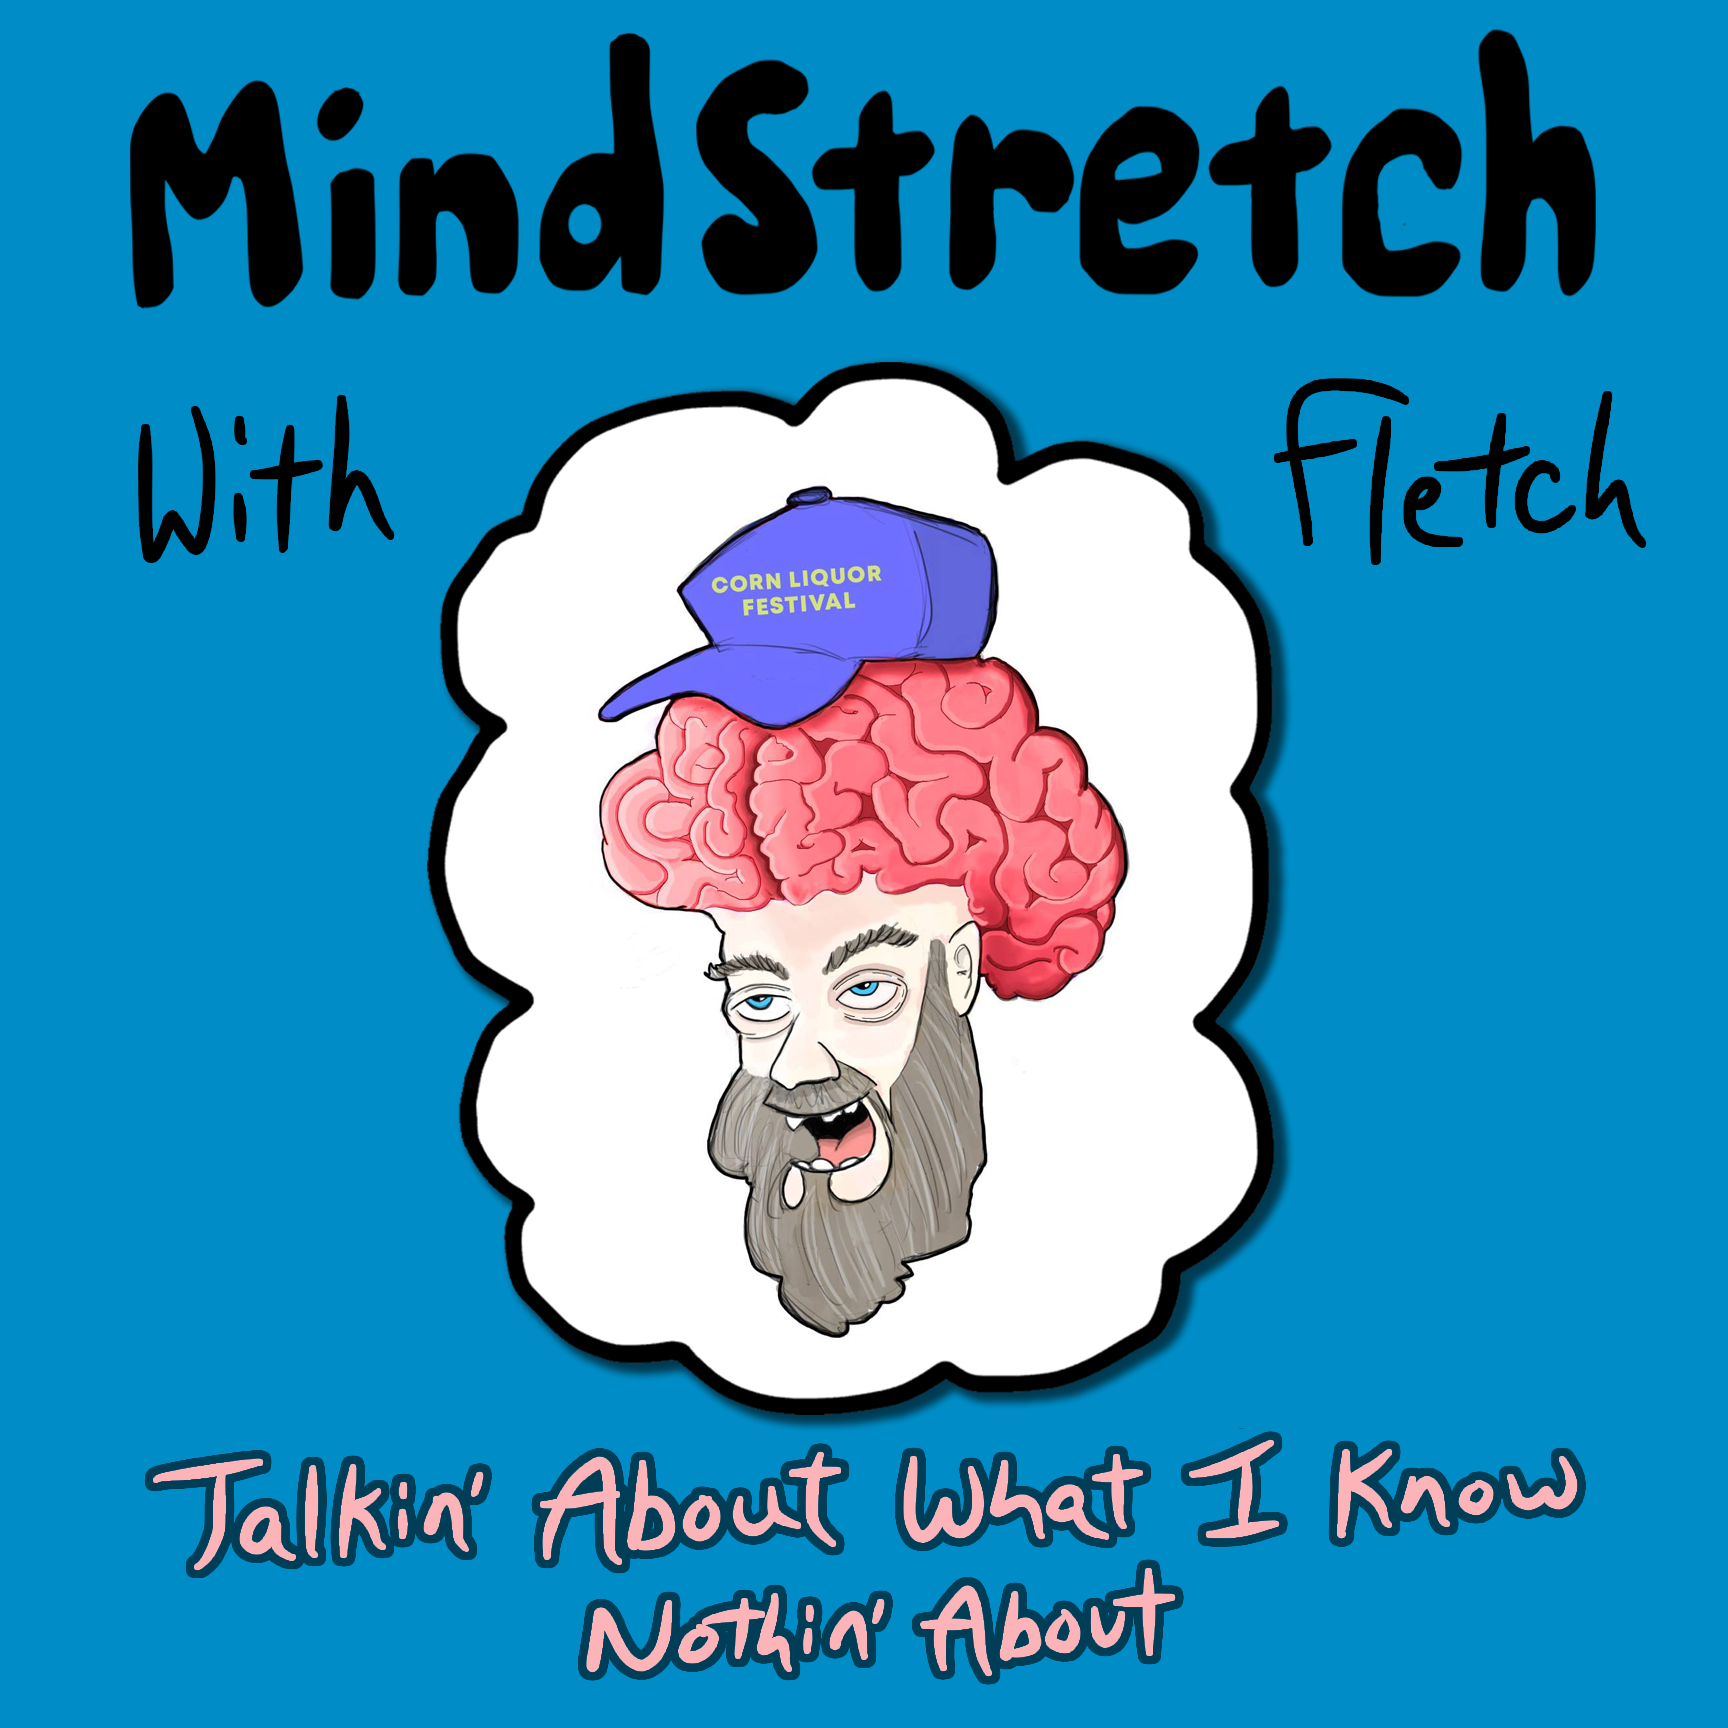 MindStretch with Fletch